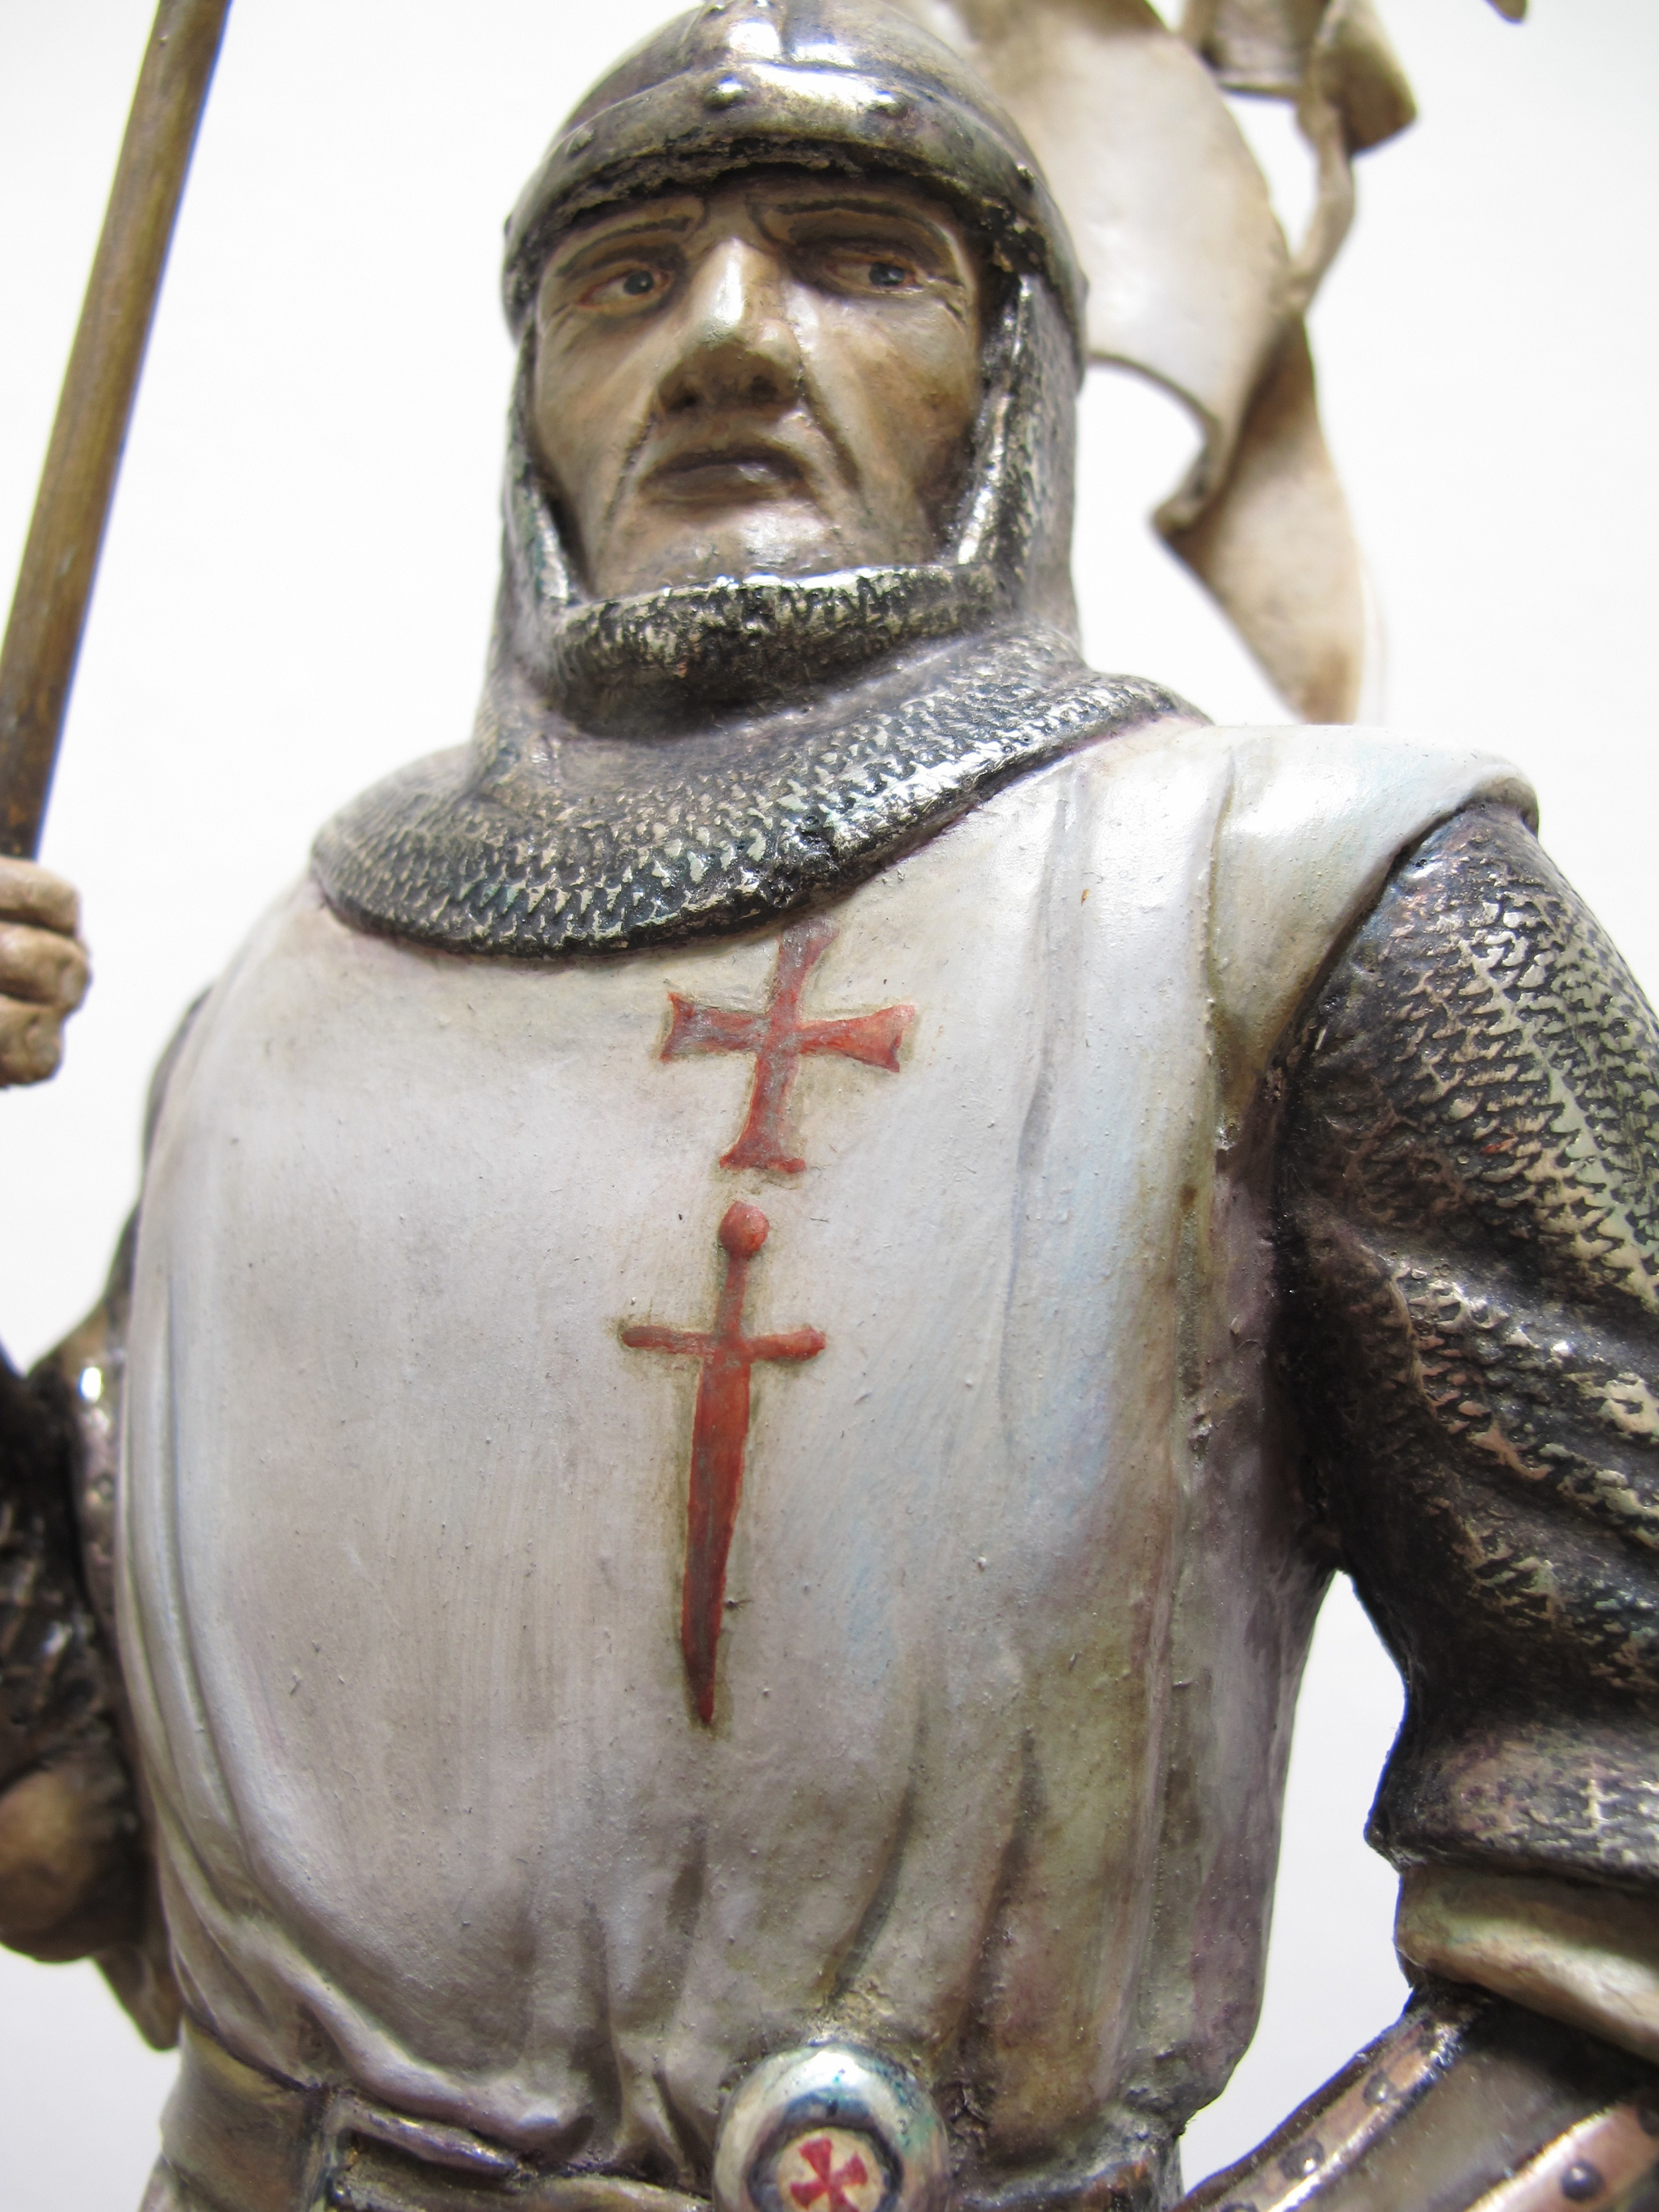 This hand-carved knight represents the historic figure of a Teutonic Knight from the thirteenth century. The chain mail and all other metal details are gilded with white gold that has been varnished and patinated. Special care has been given to the painting of the face and the hands.